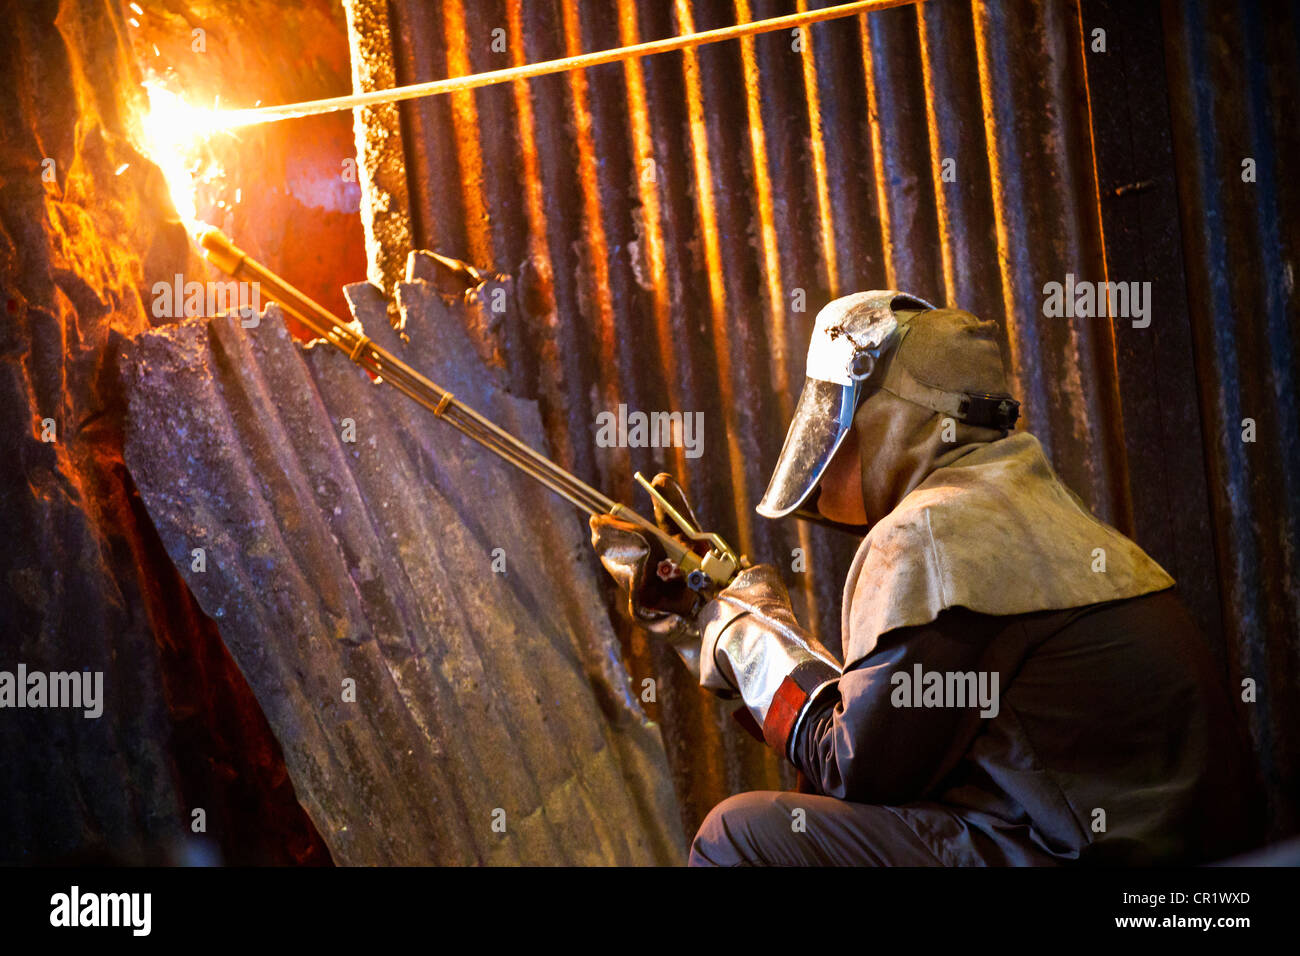 Welder at work in steel forge - Stock Image